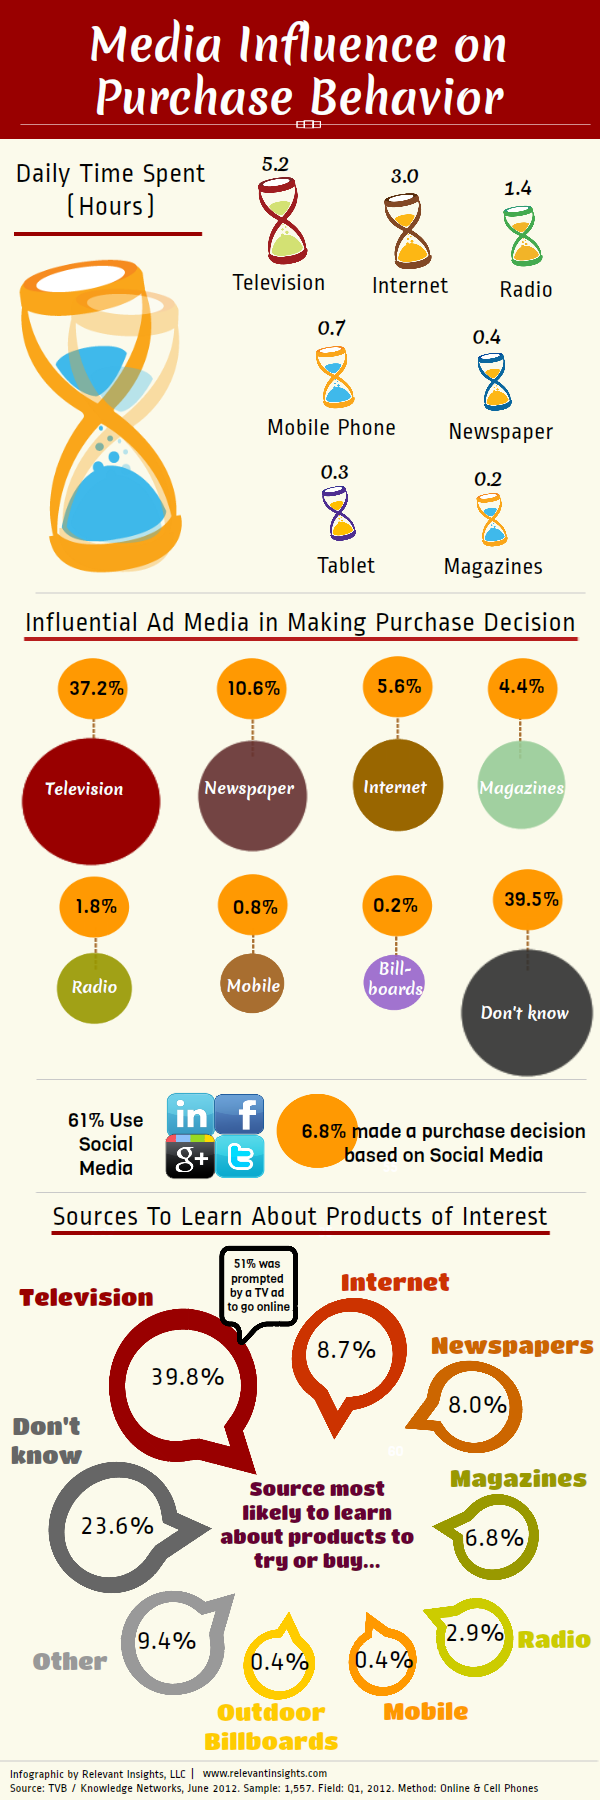 Media Influence on Purchase Behavior